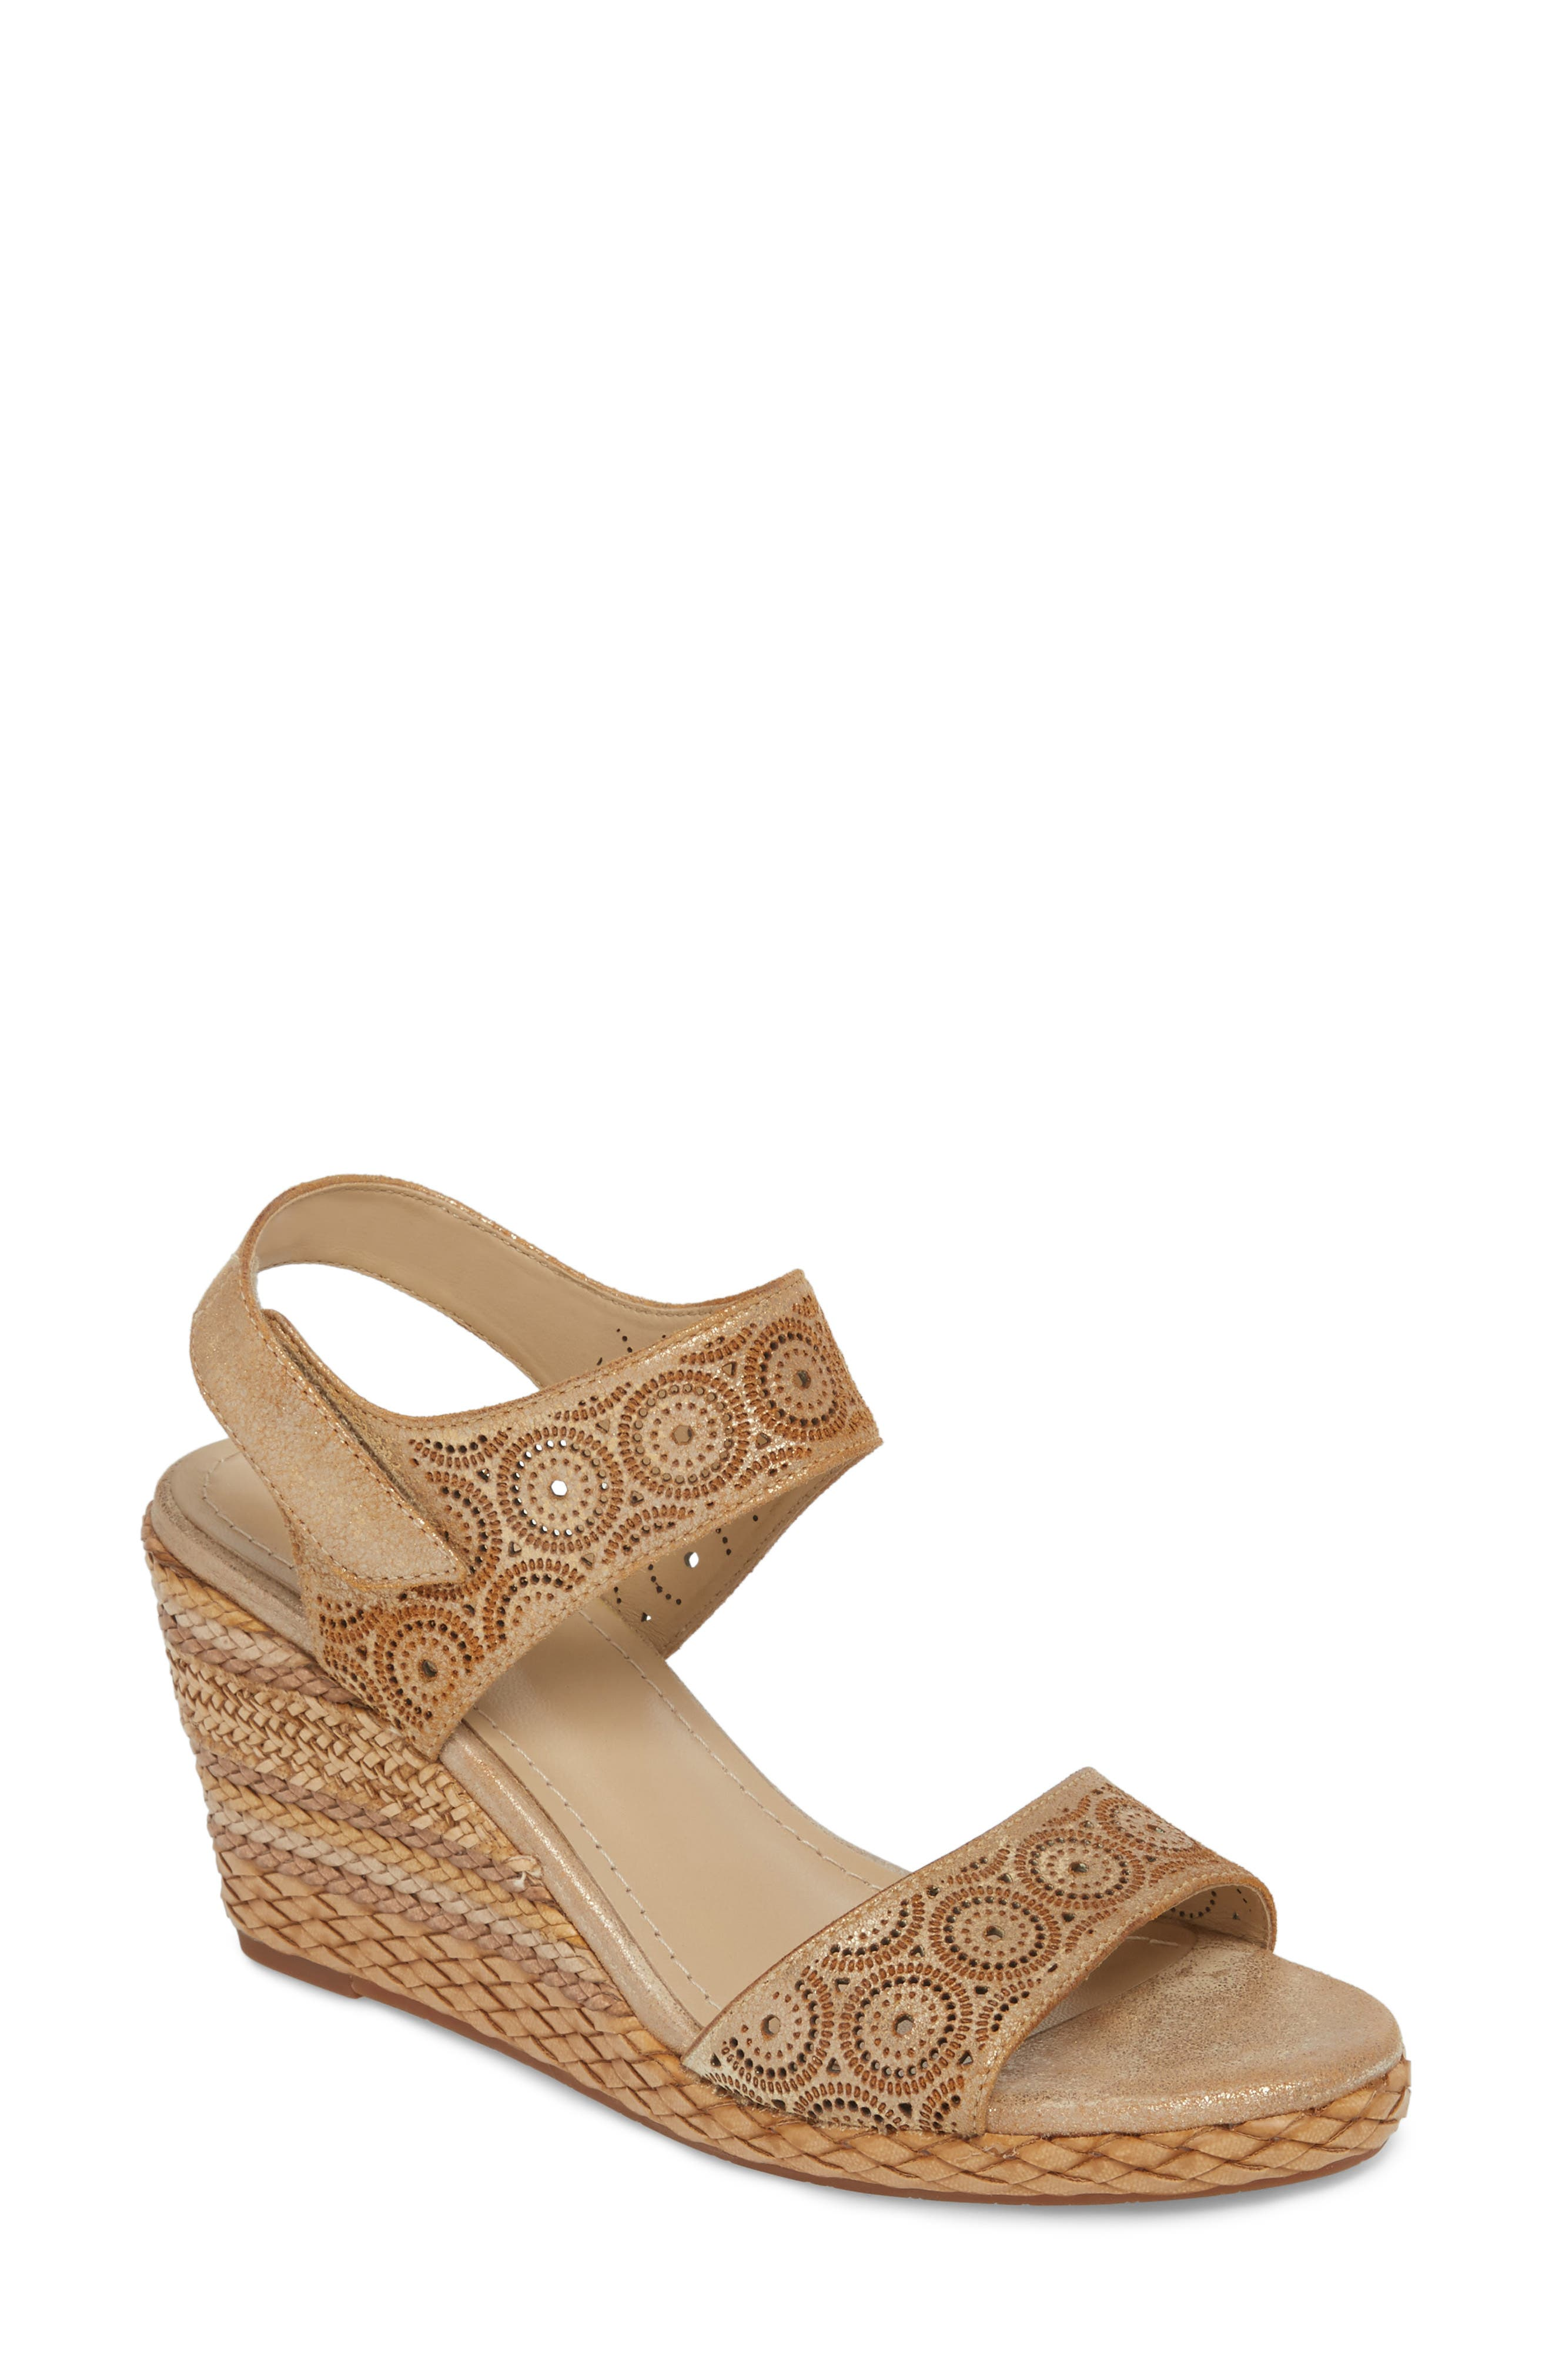 Georgiana Wedge Sandal,                             Main thumbnail 2, color,